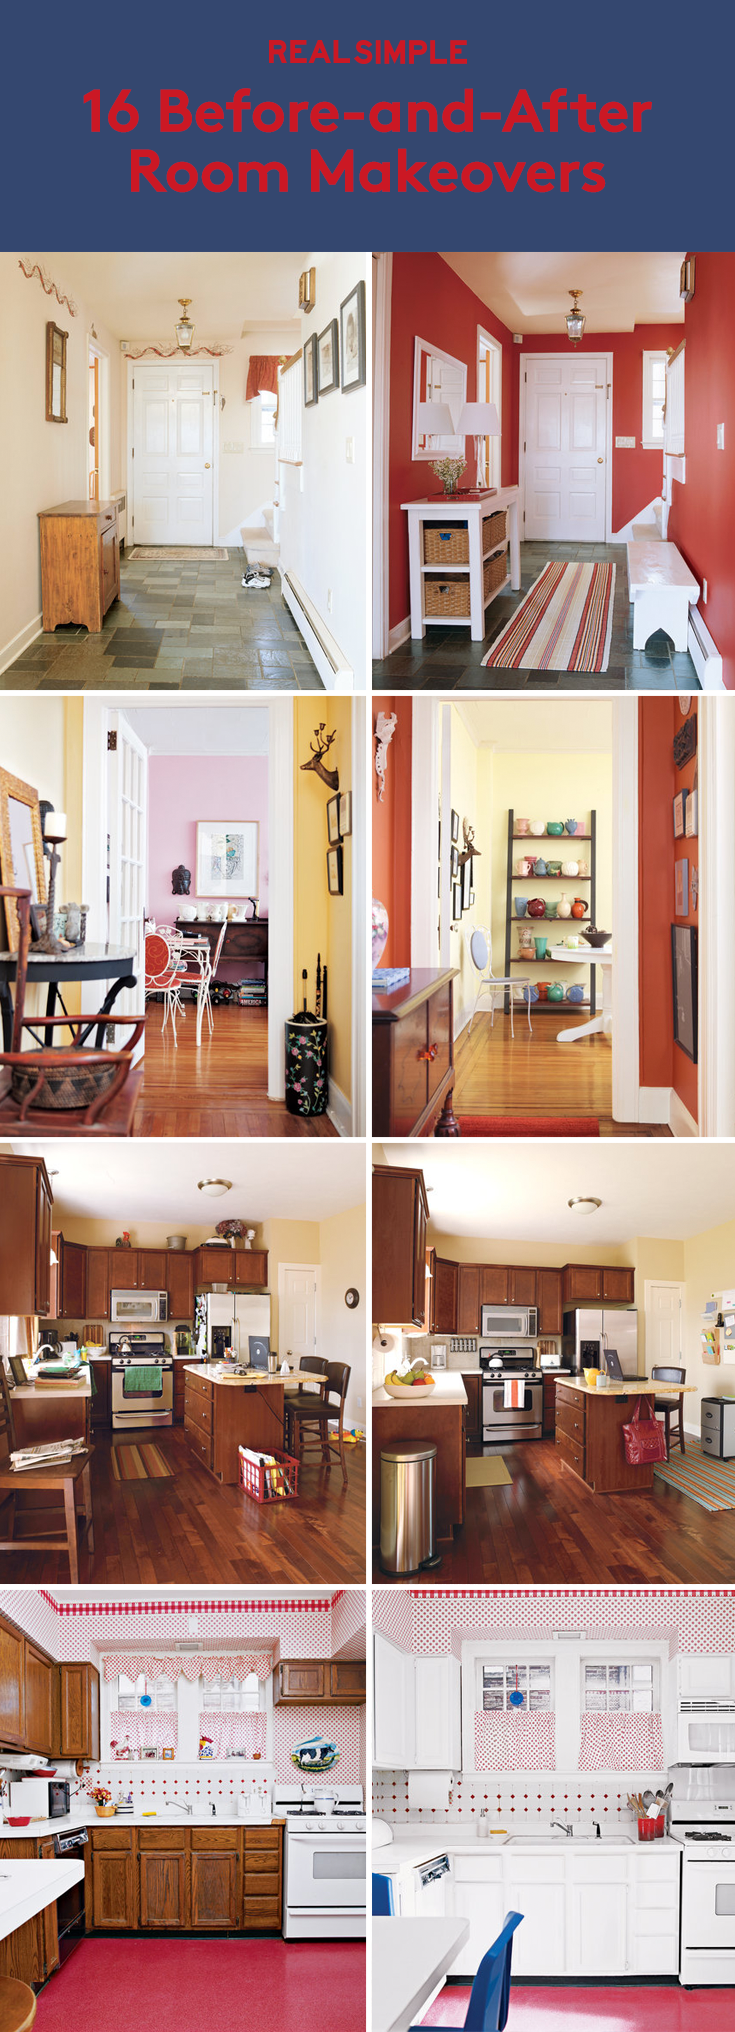 16 Before-and-After Room Makeovers | Learn how Real Simple transformed readers' kitchens, bathrooms, and more.